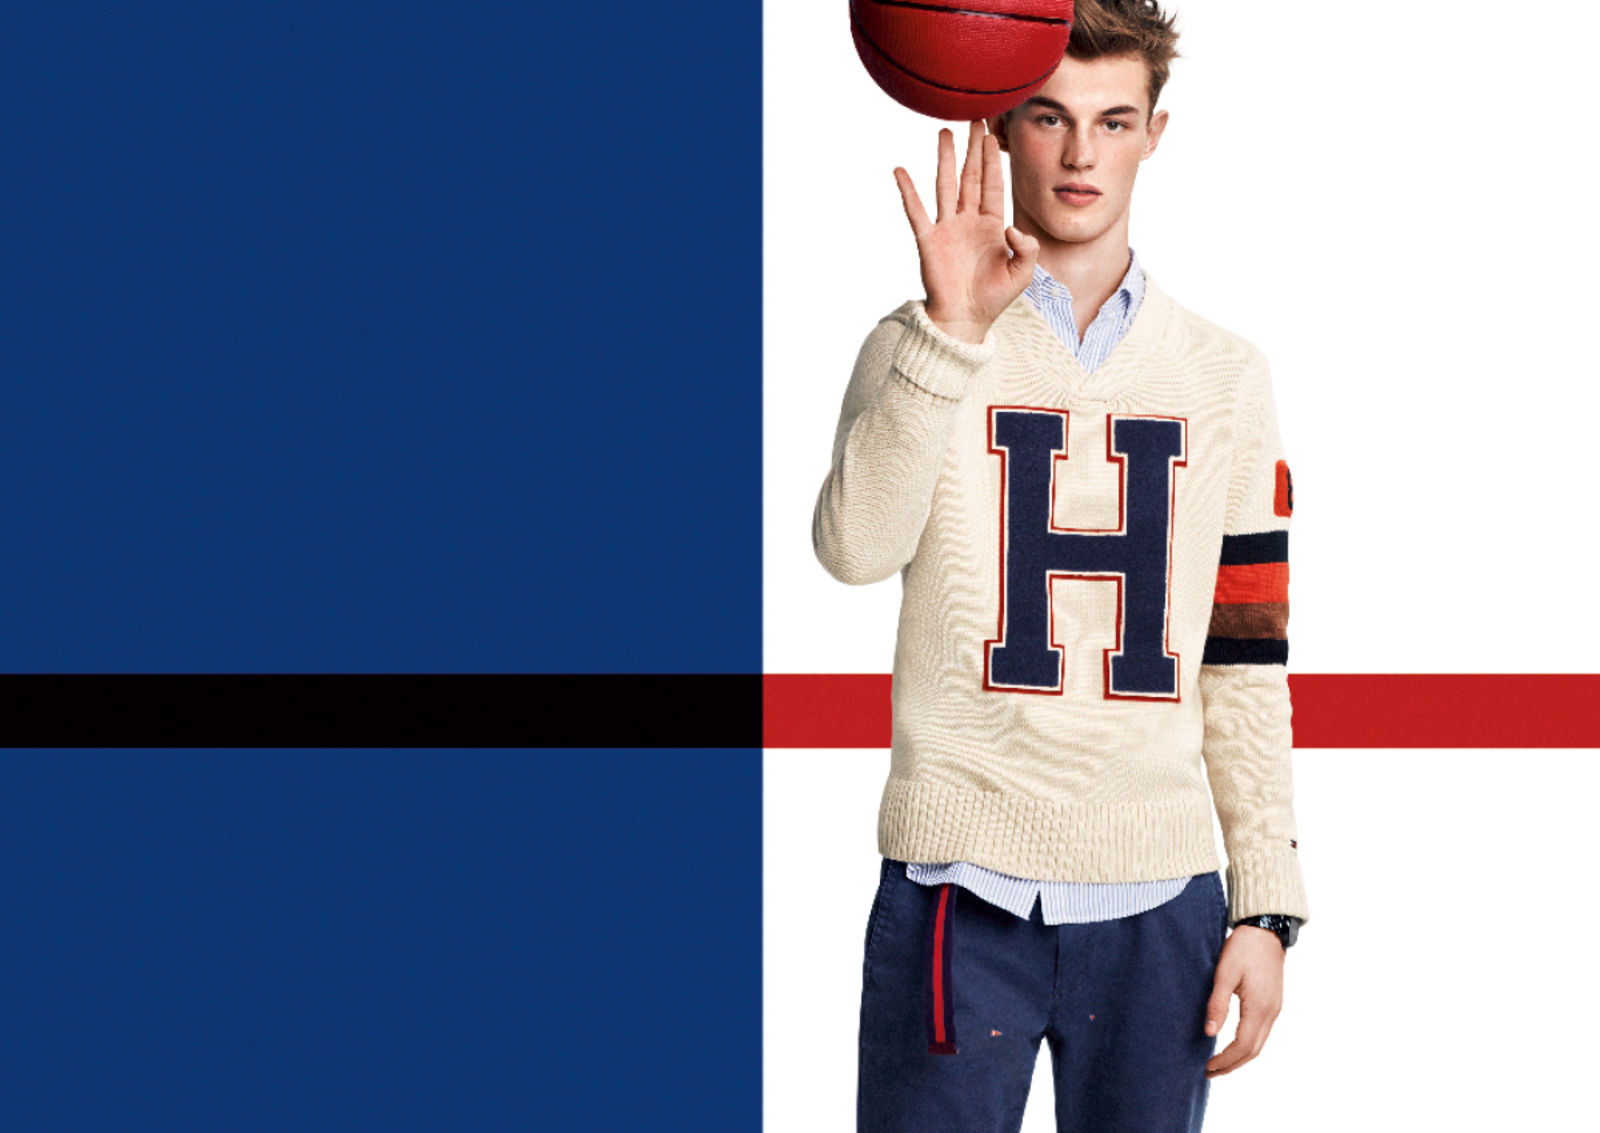 TOMMY HILFIGER (Afbeelding 3)